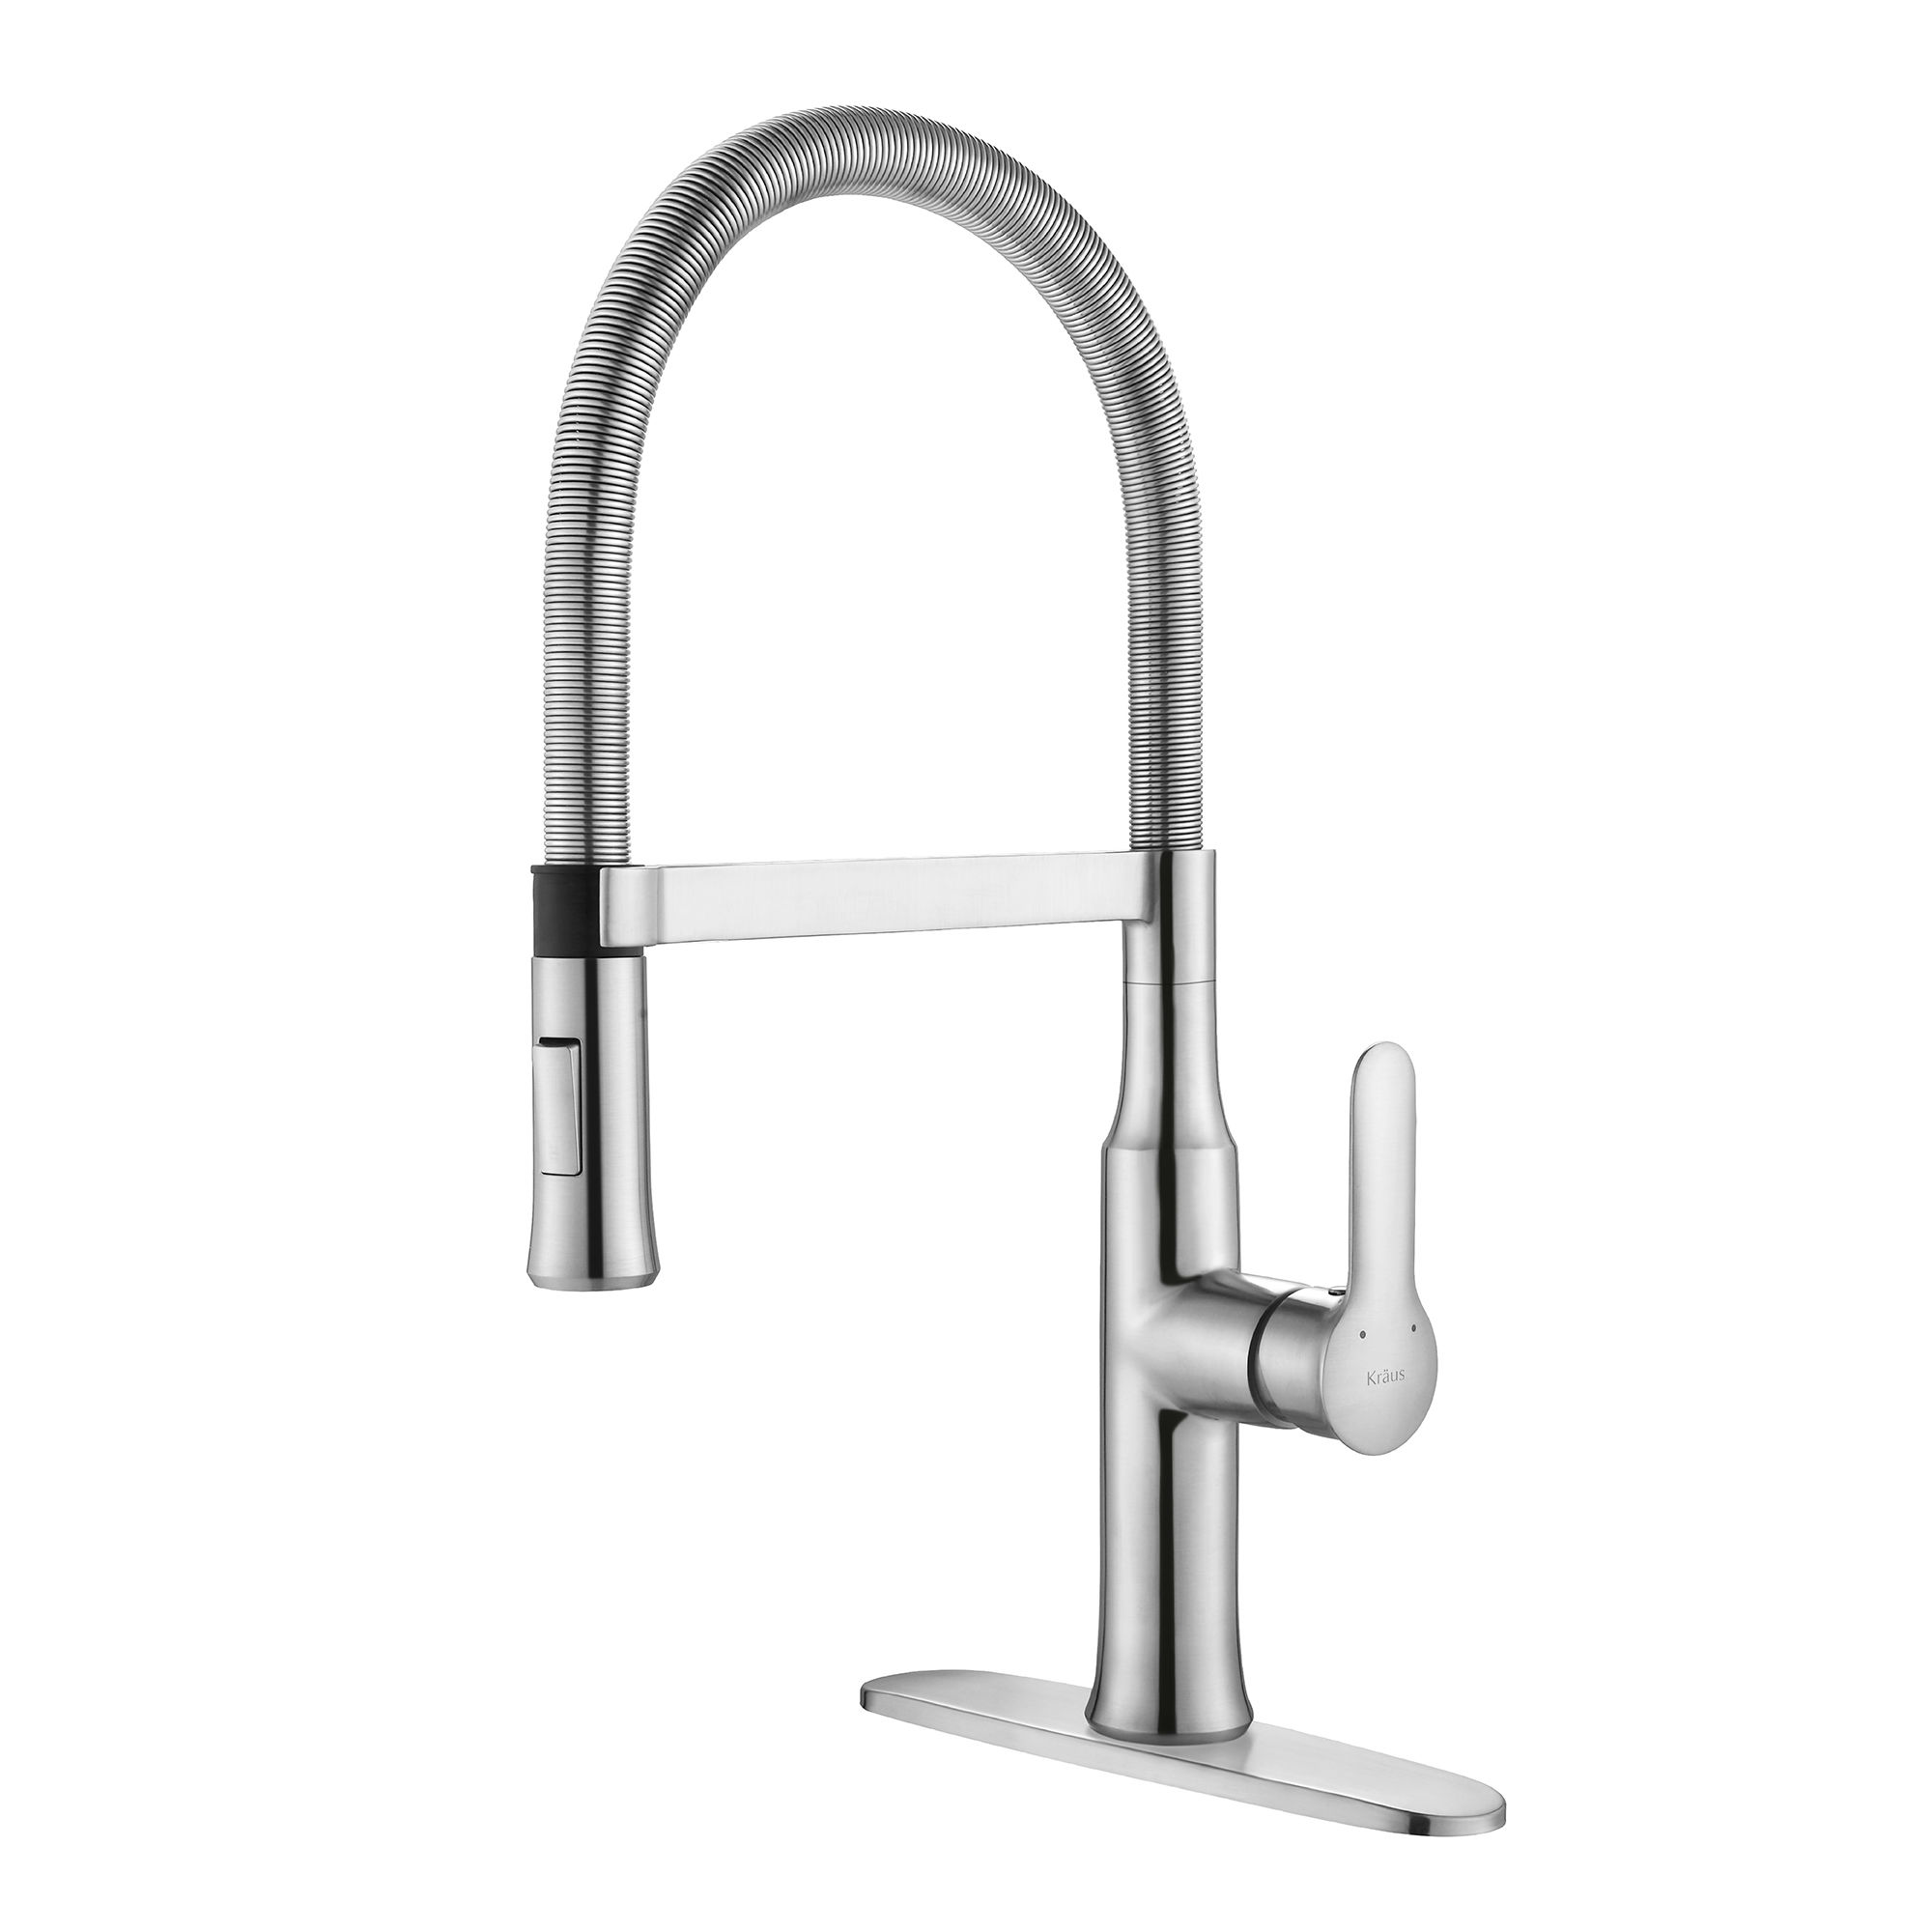 faucets alluring menards amazing cheap sink pegasus for images kitchen marvelous bar photos gratograt faucet of moen luxury